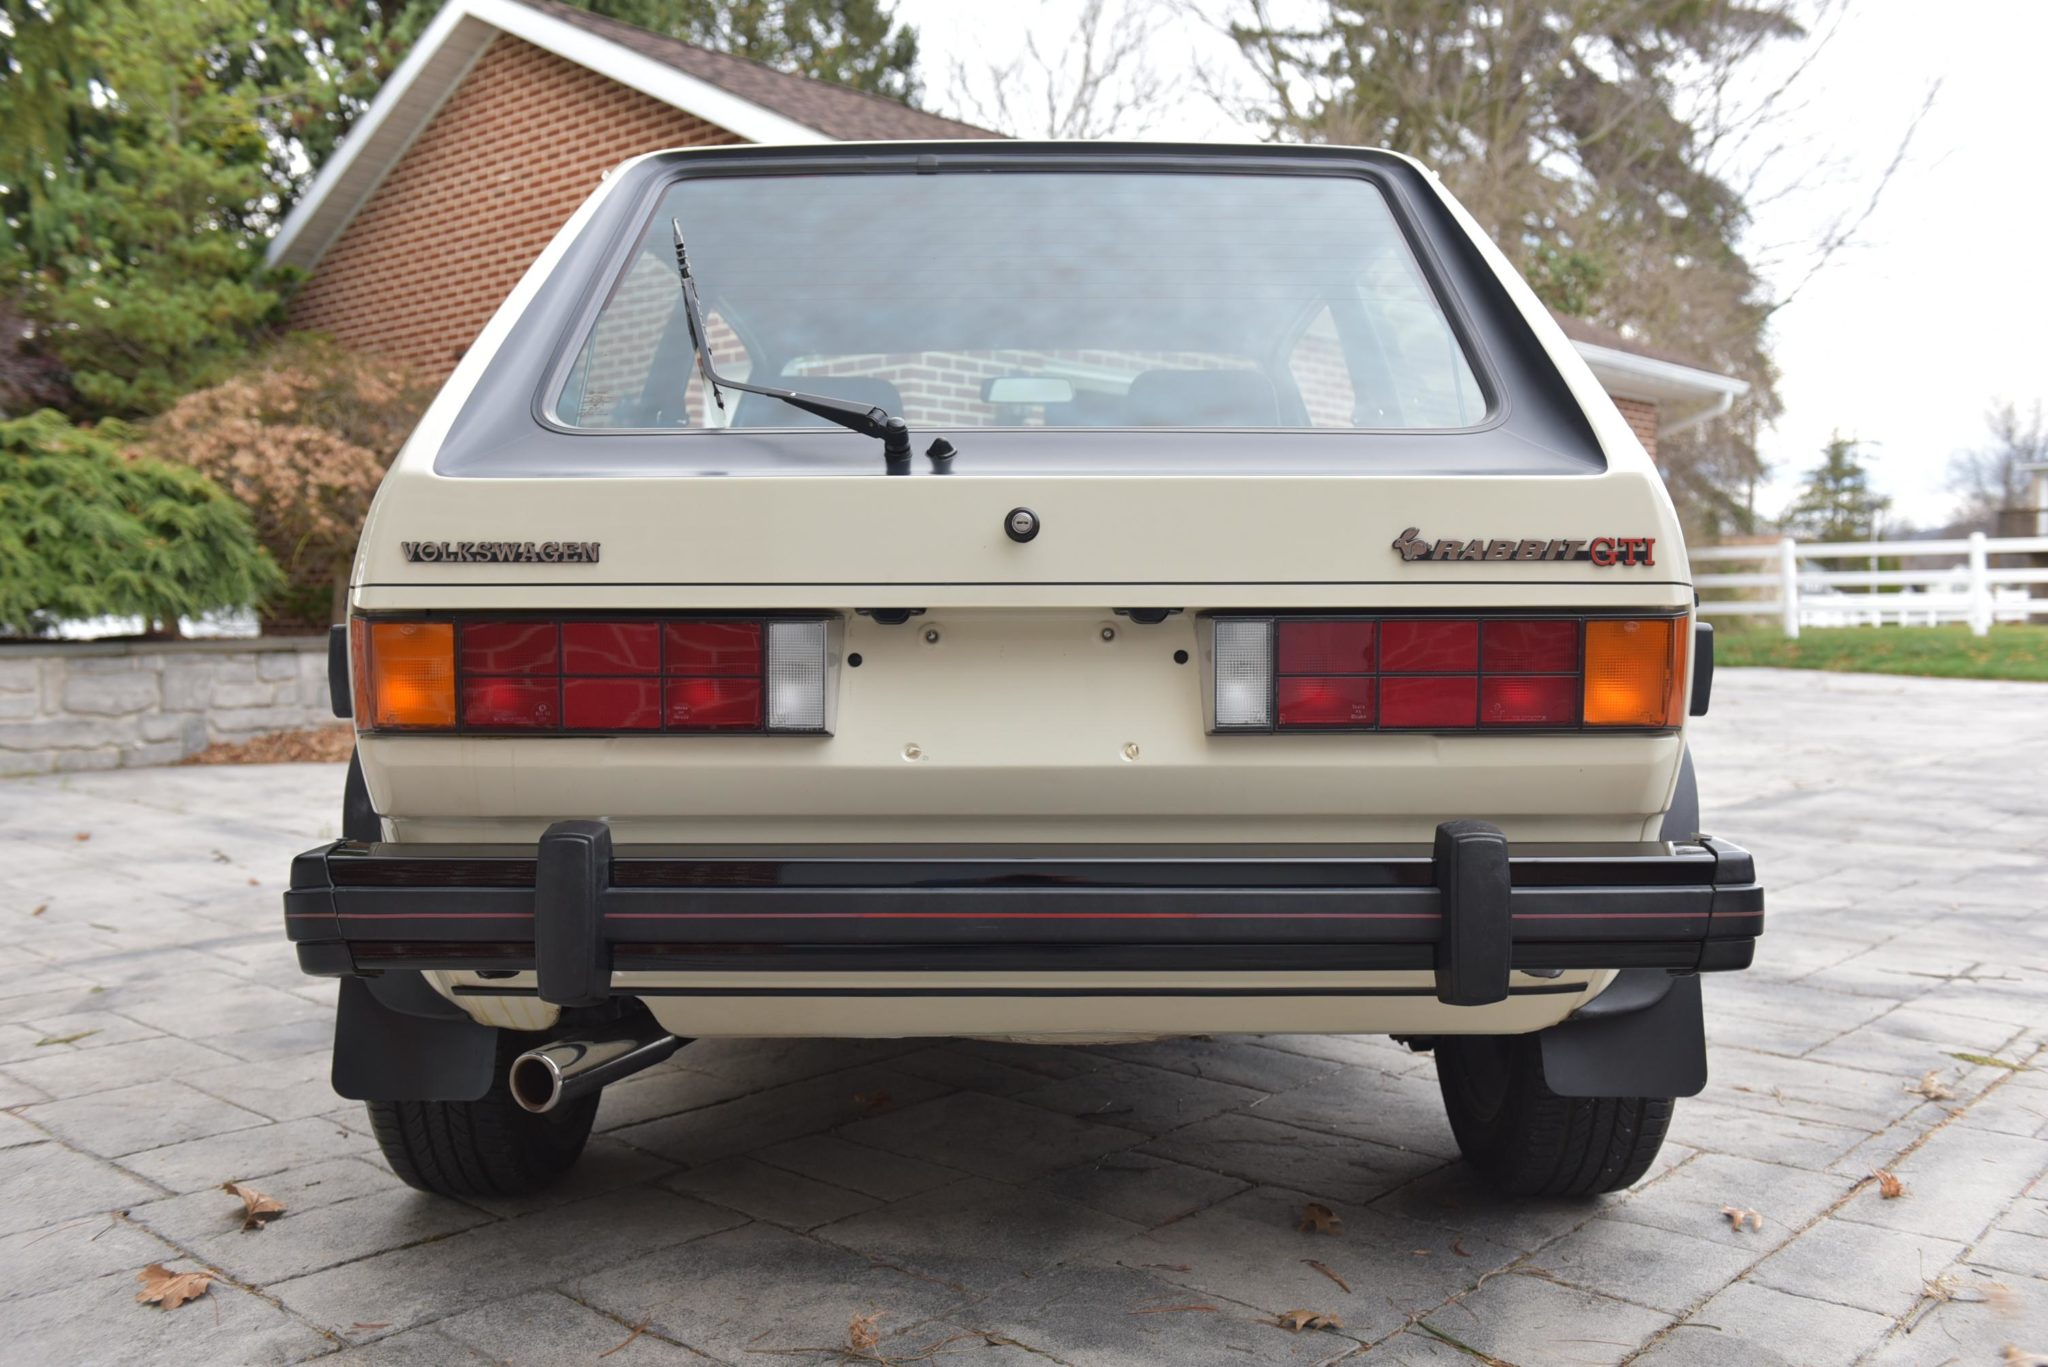 Volkswagen Rabbit GTI Callaway Turbo Stage II Rear